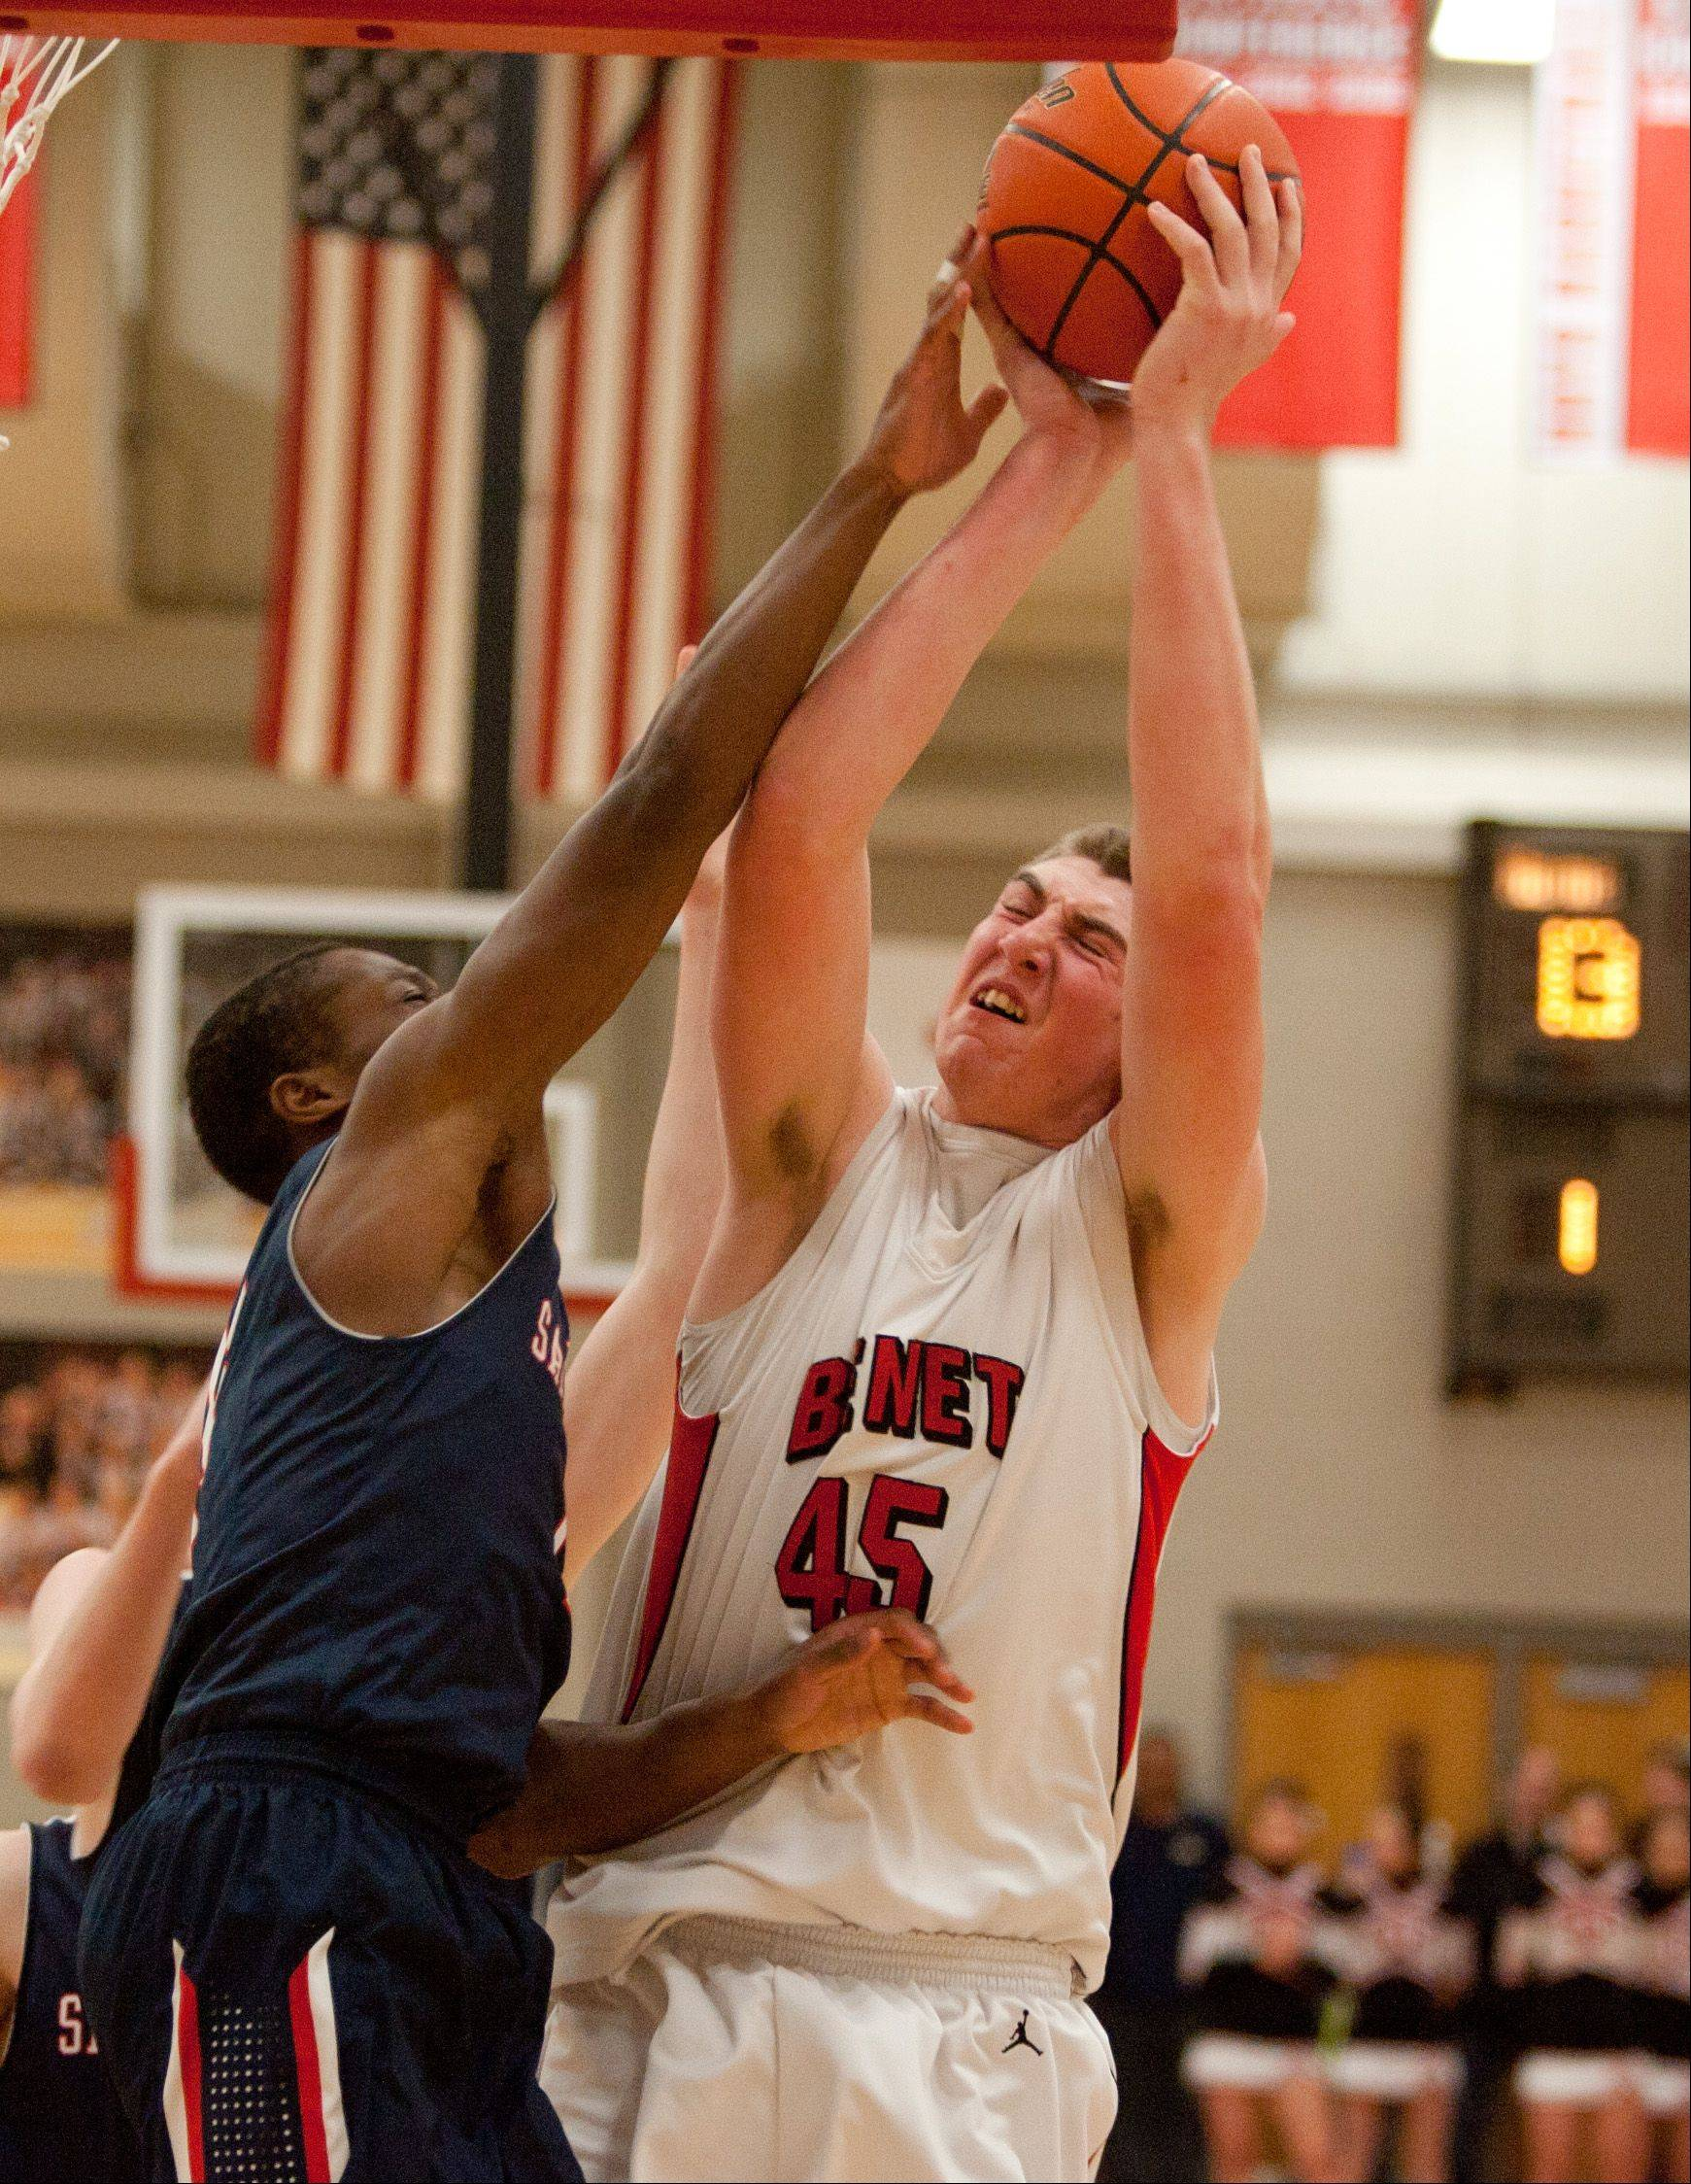 Benet's Sean O'Mara moves to the basket against St. Viator.